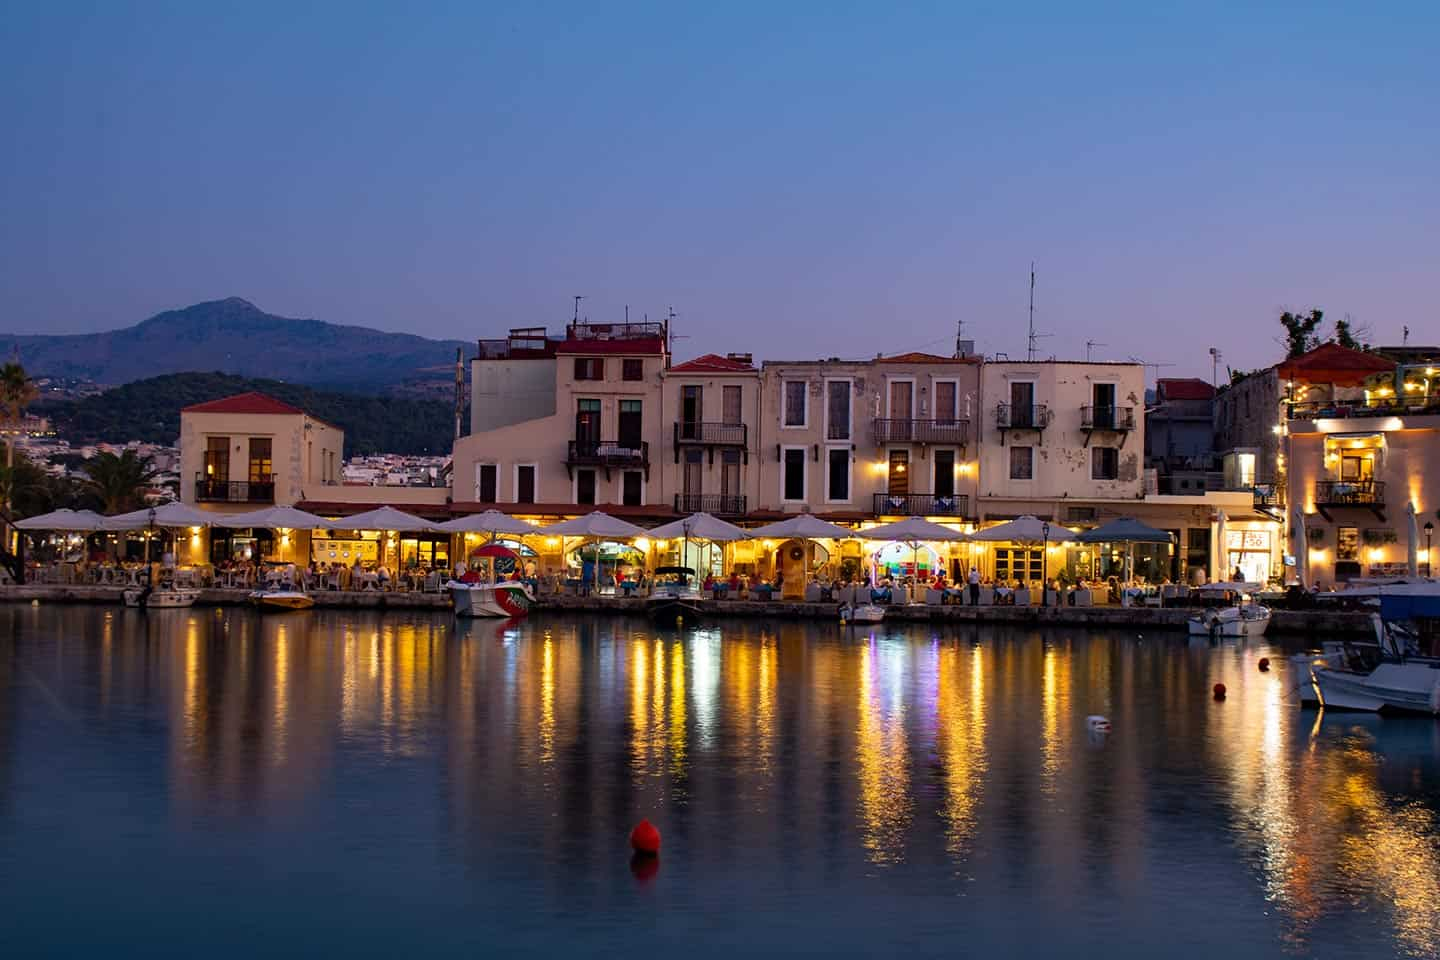 Image of the Venetian harbour of Rethymno at dusk